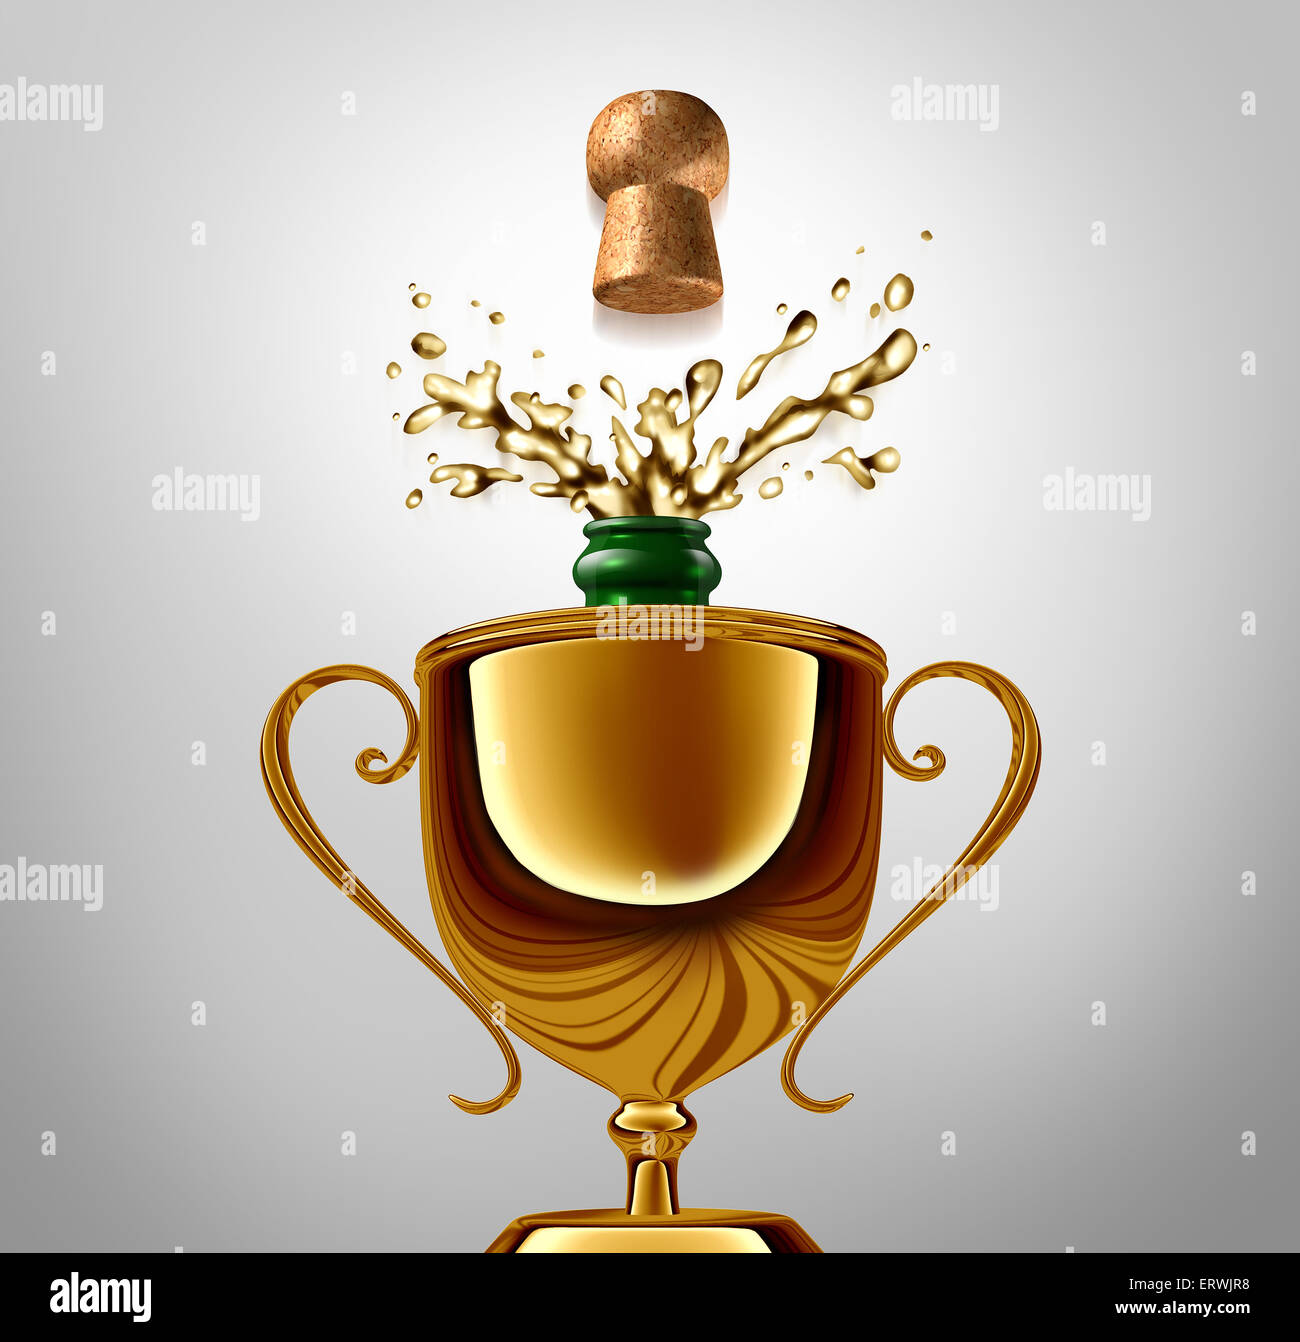 Winner celebration concept as a golden trophy with an uncorked champagne bottle inside as an achievement metaphor - Stock Image